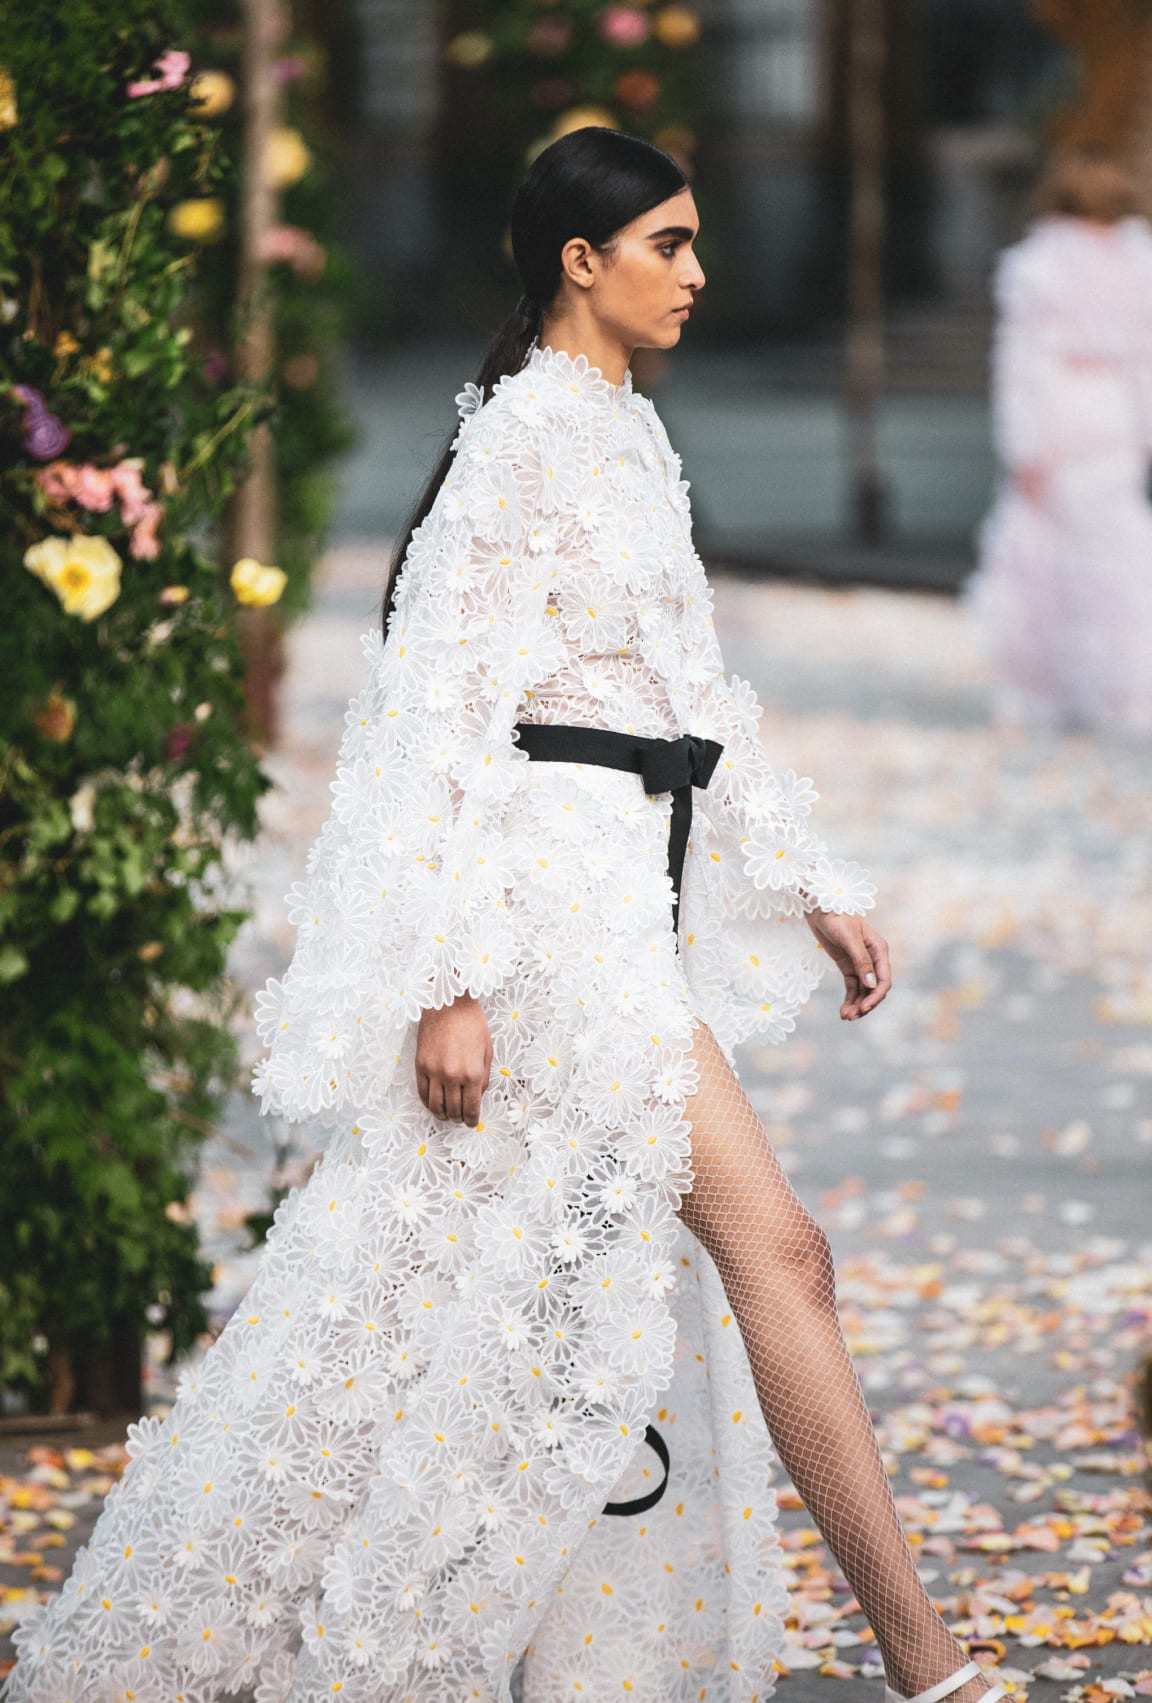 View 2 - Look 30 - Spring-Summer 2021 Haute Couture - see full sized version